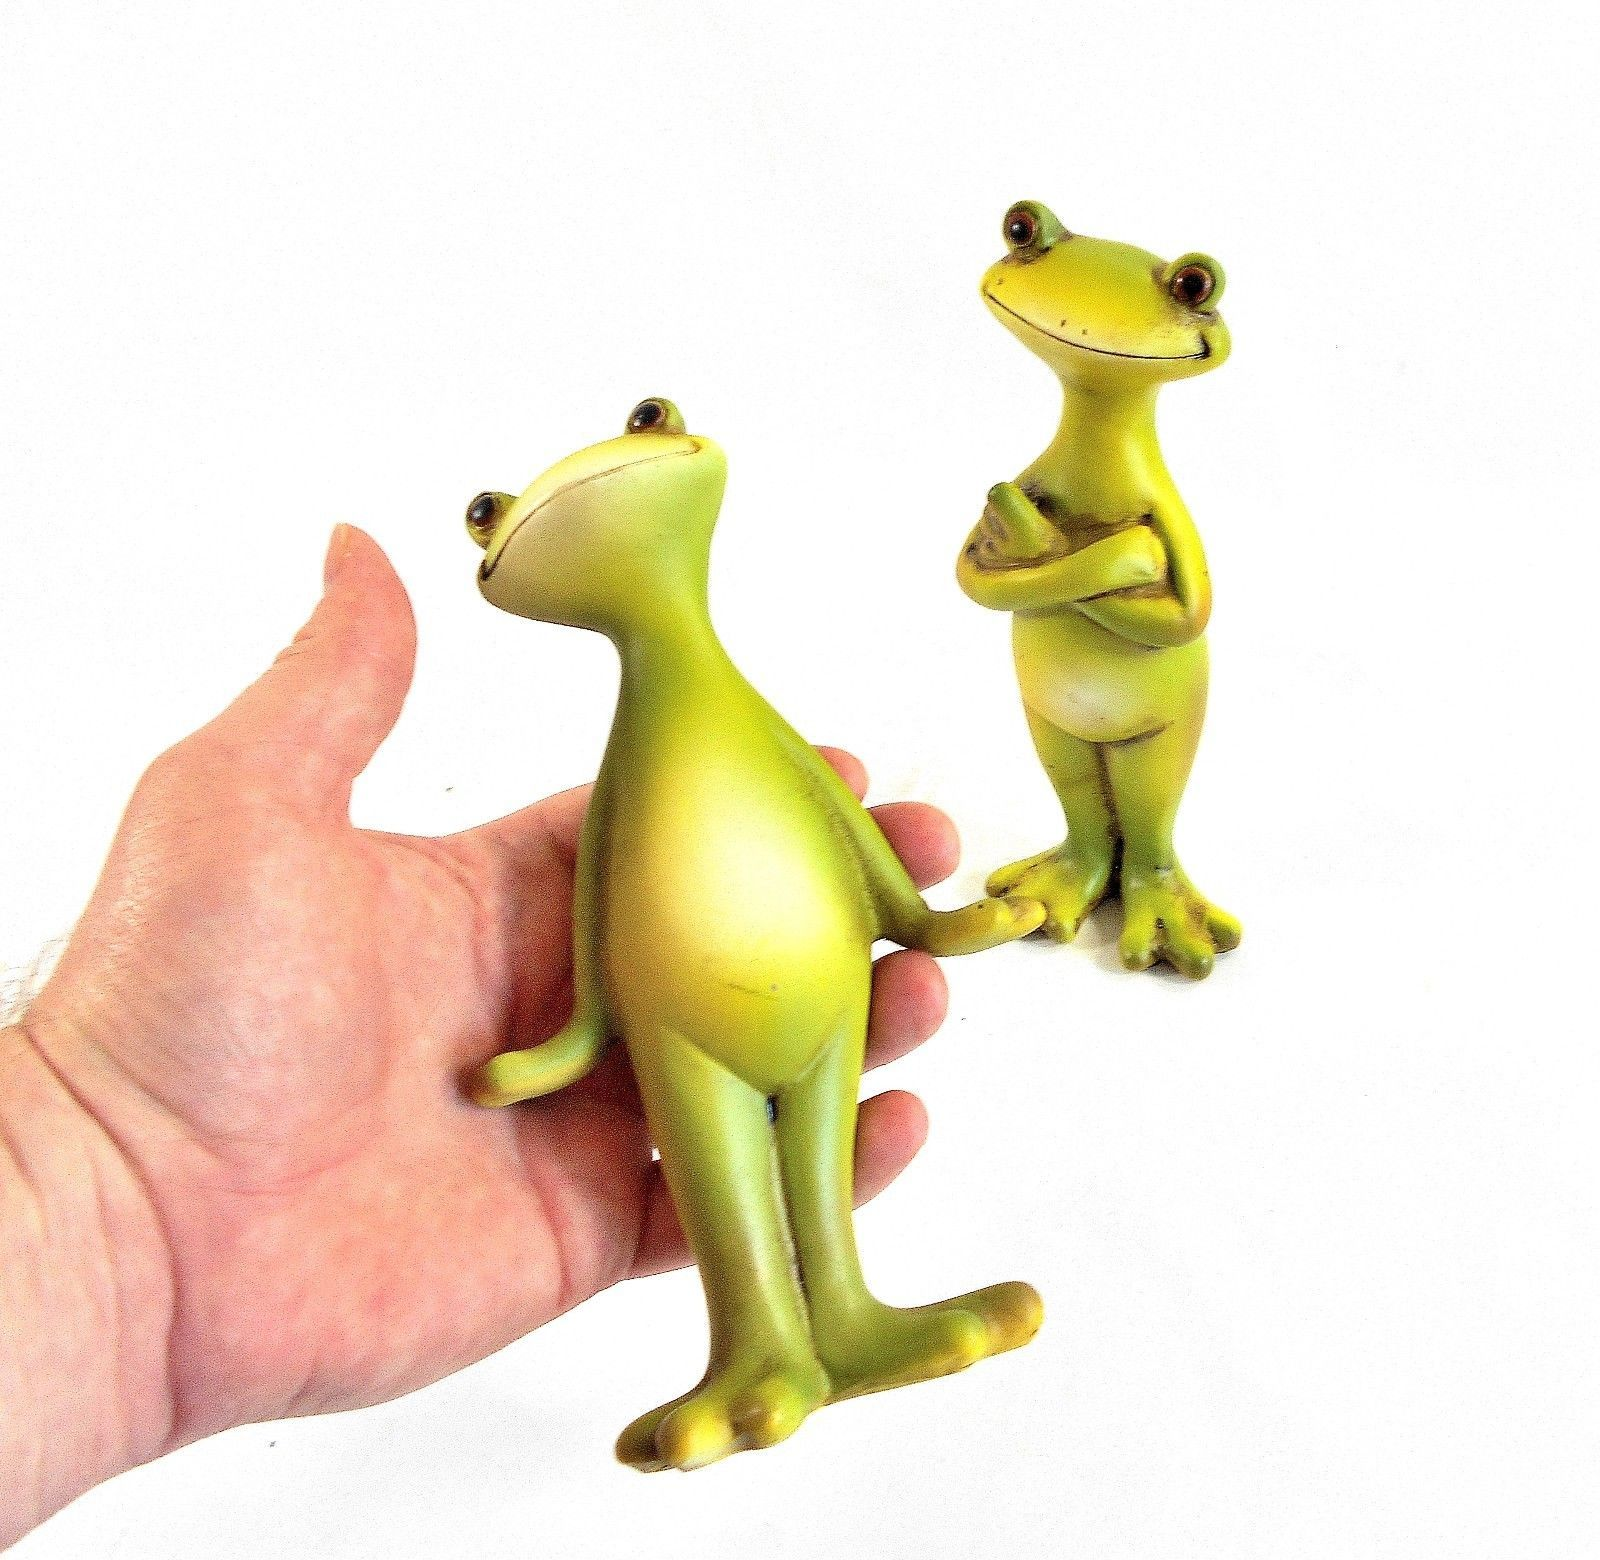 Two Cute Smiling Frogs – Two Happy Frog Sculptures